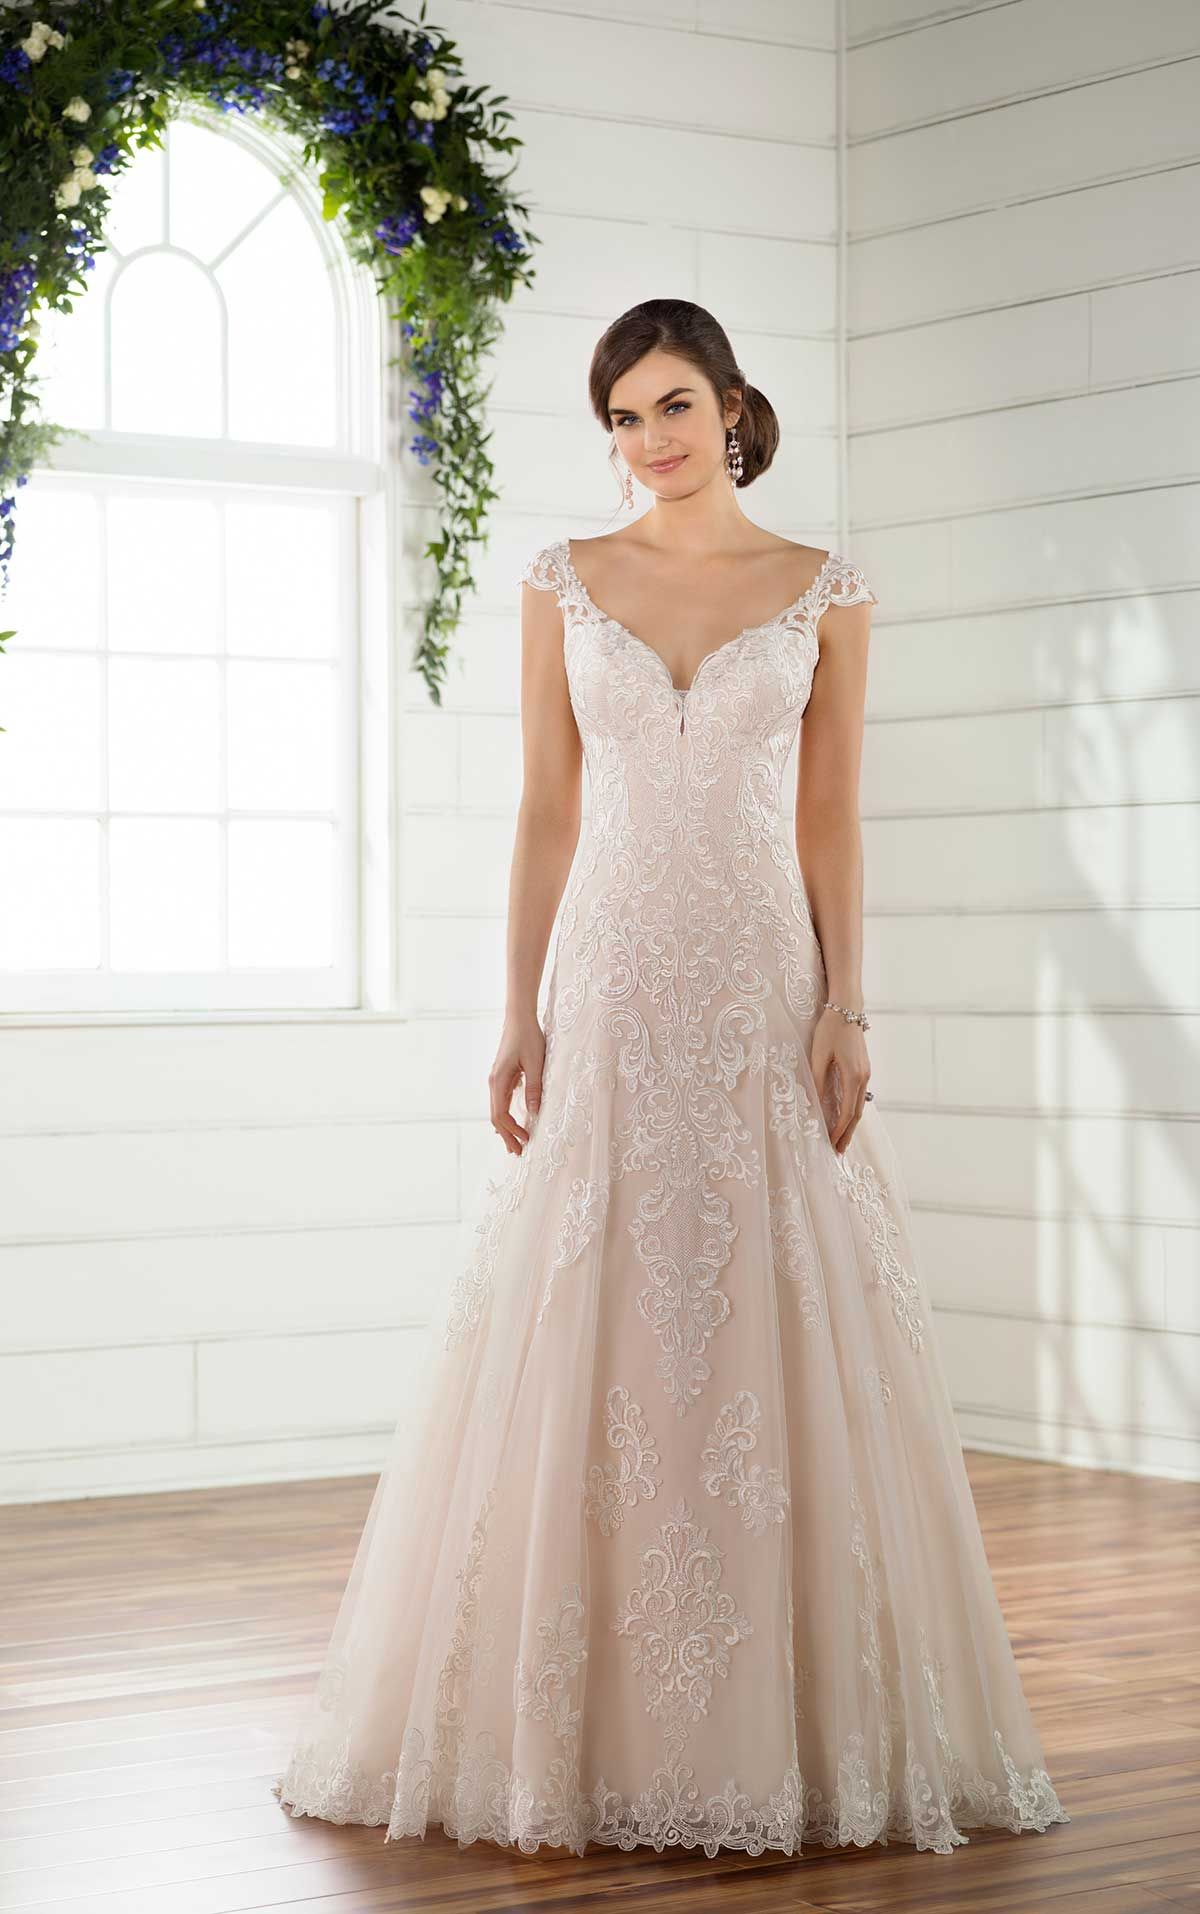 Classic ALine Wedding Dress  Tulle gown Gowns and Wedding dress